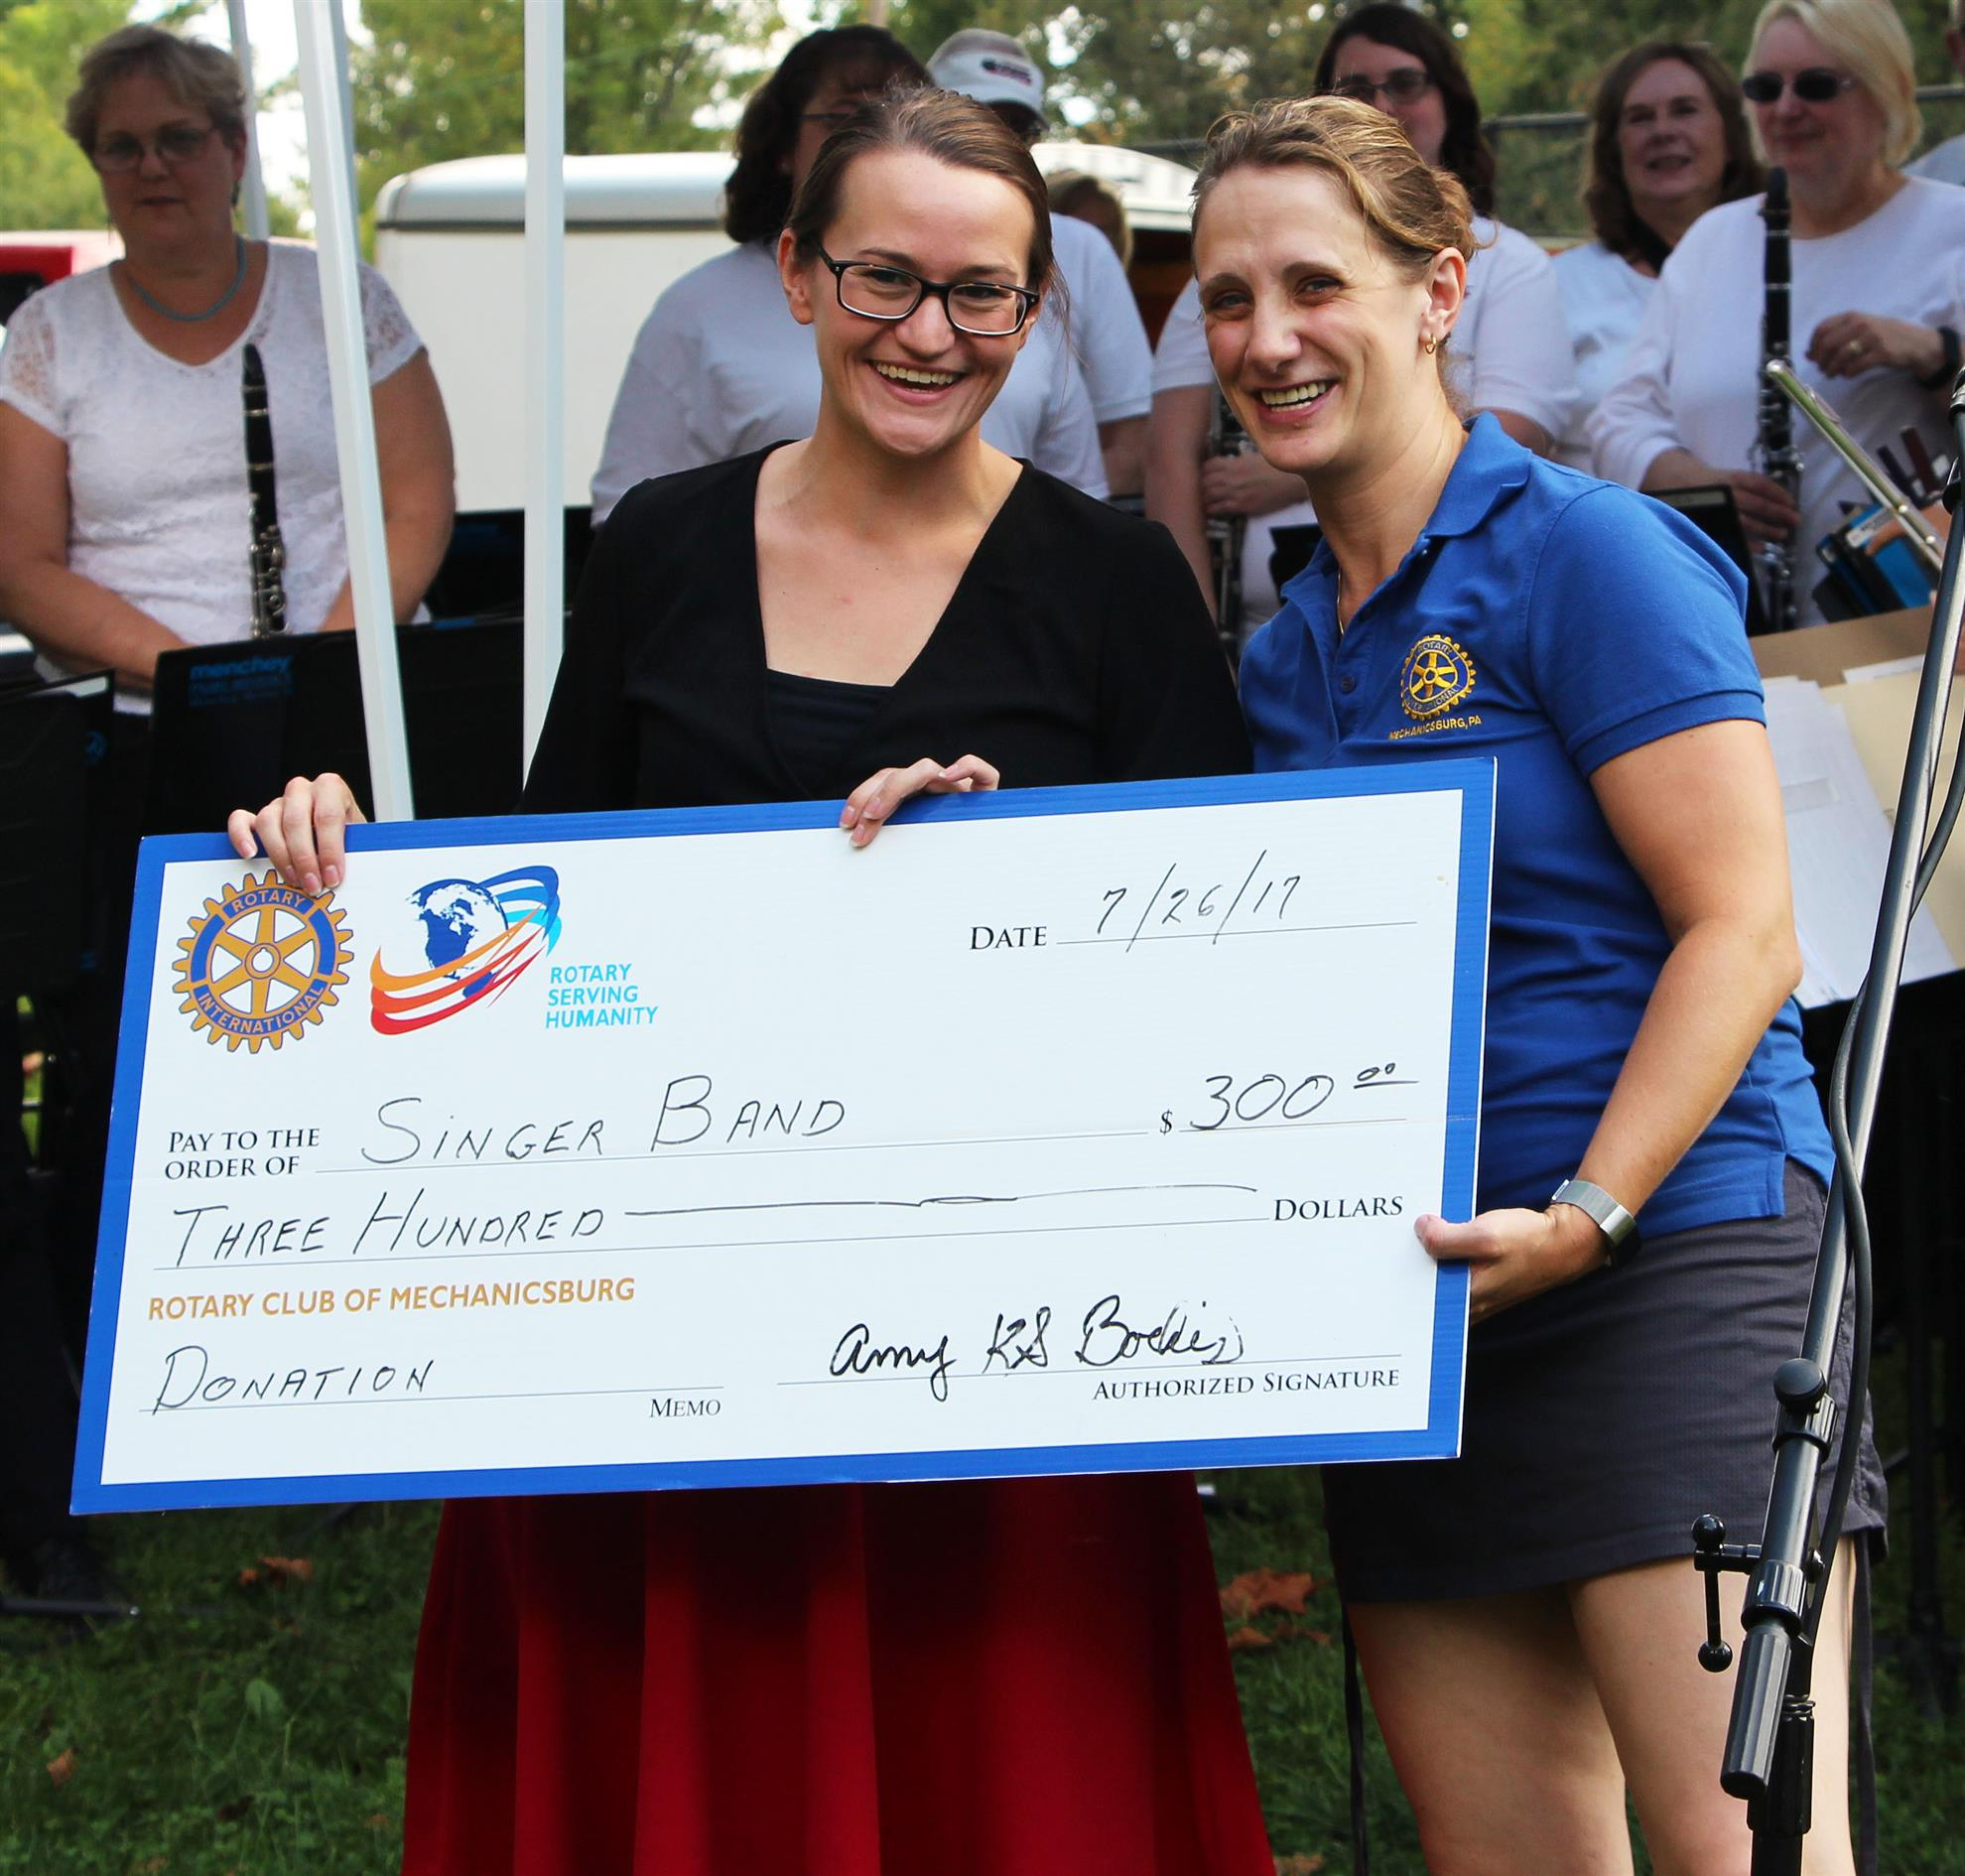 Singer Band Receives Donation At Ox Roast